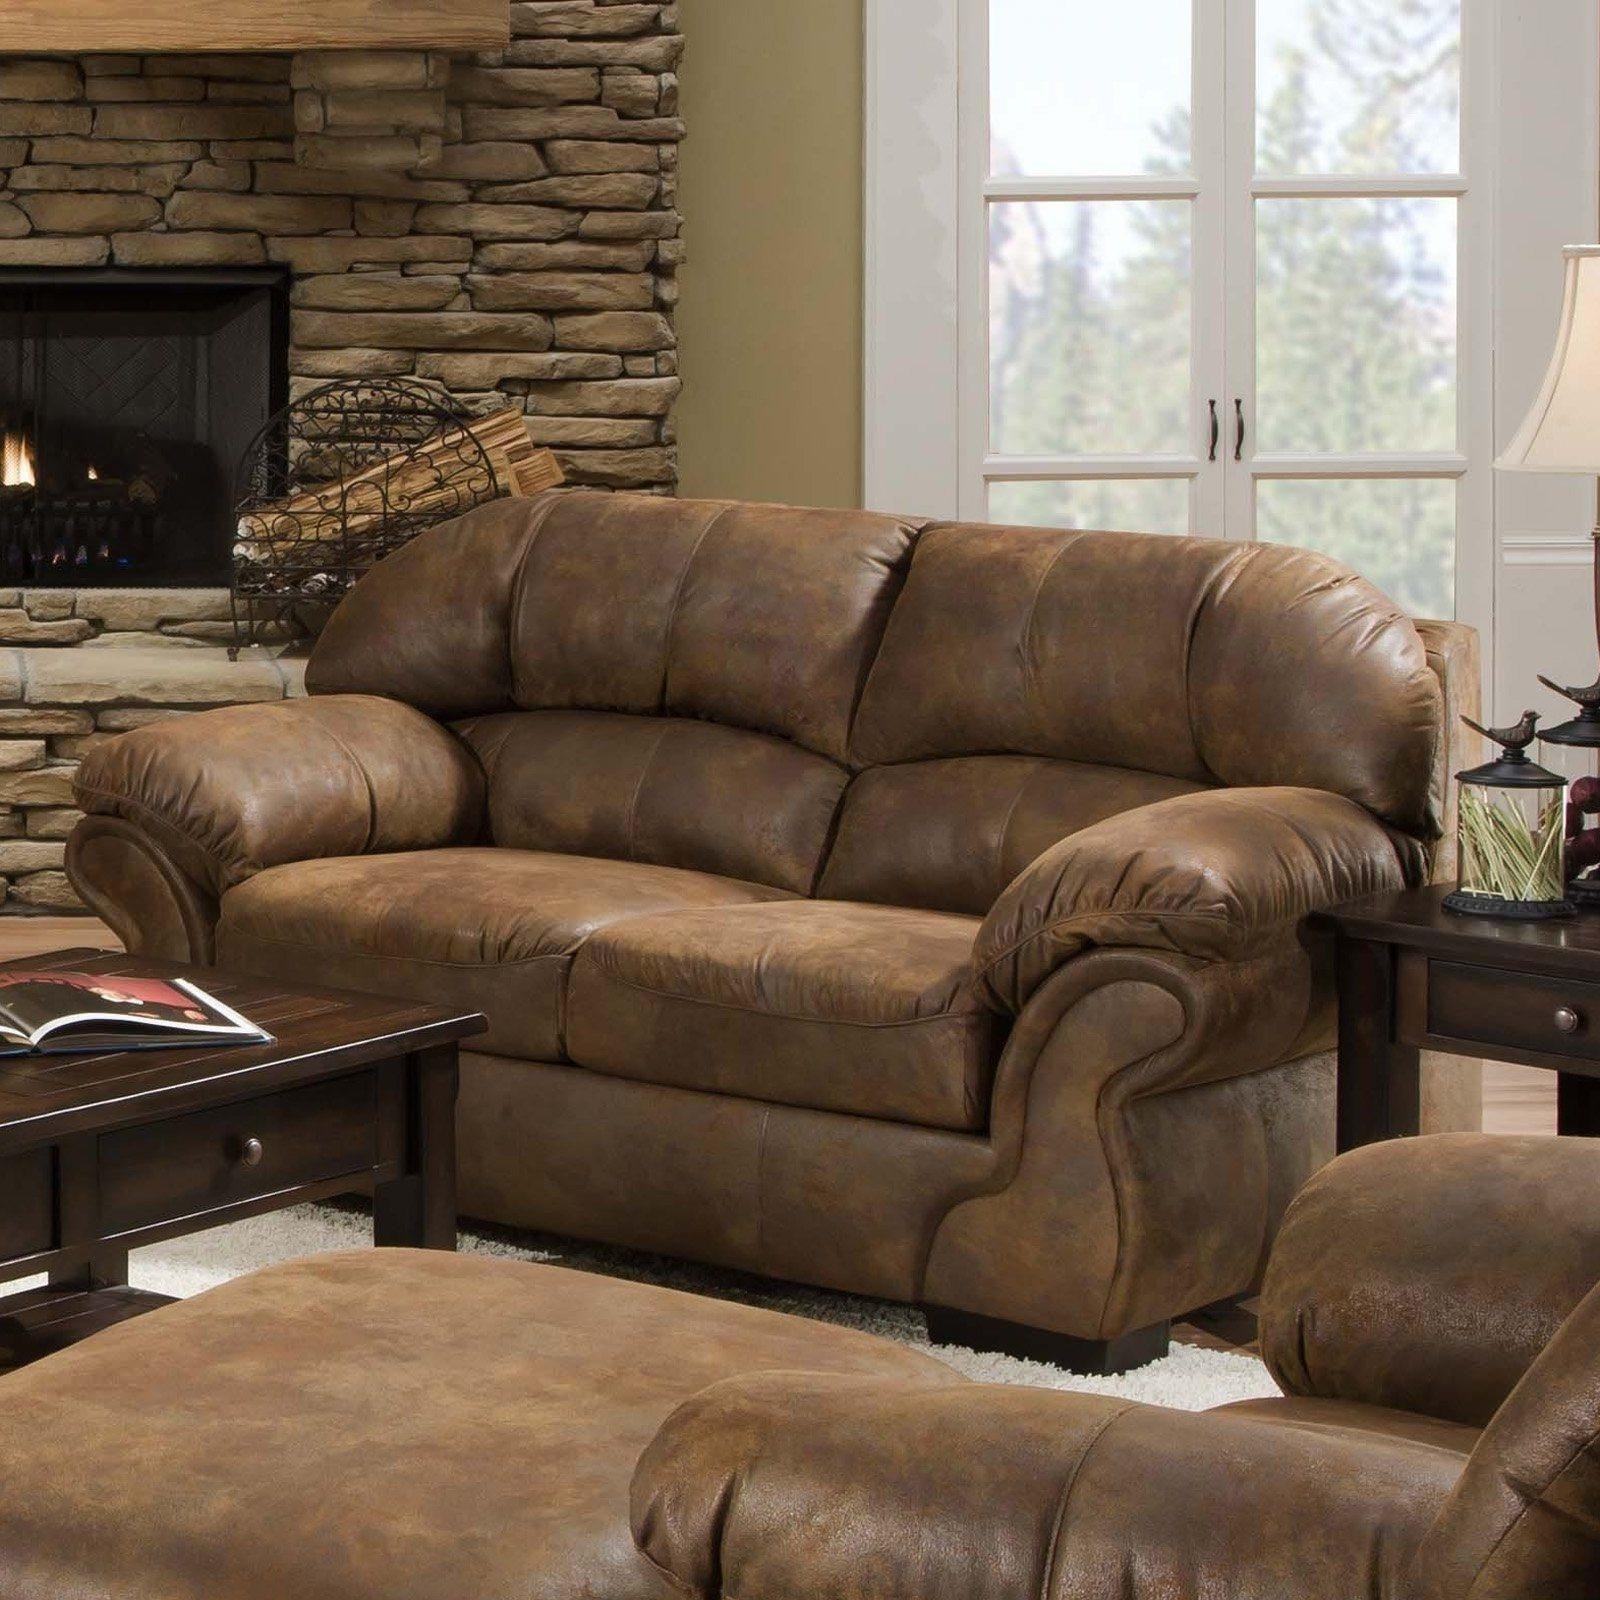 Living Room Ideas With Leather Furniture Intended For Warm With Regard To Bomber Leather Sofas (Image 12 of 20)